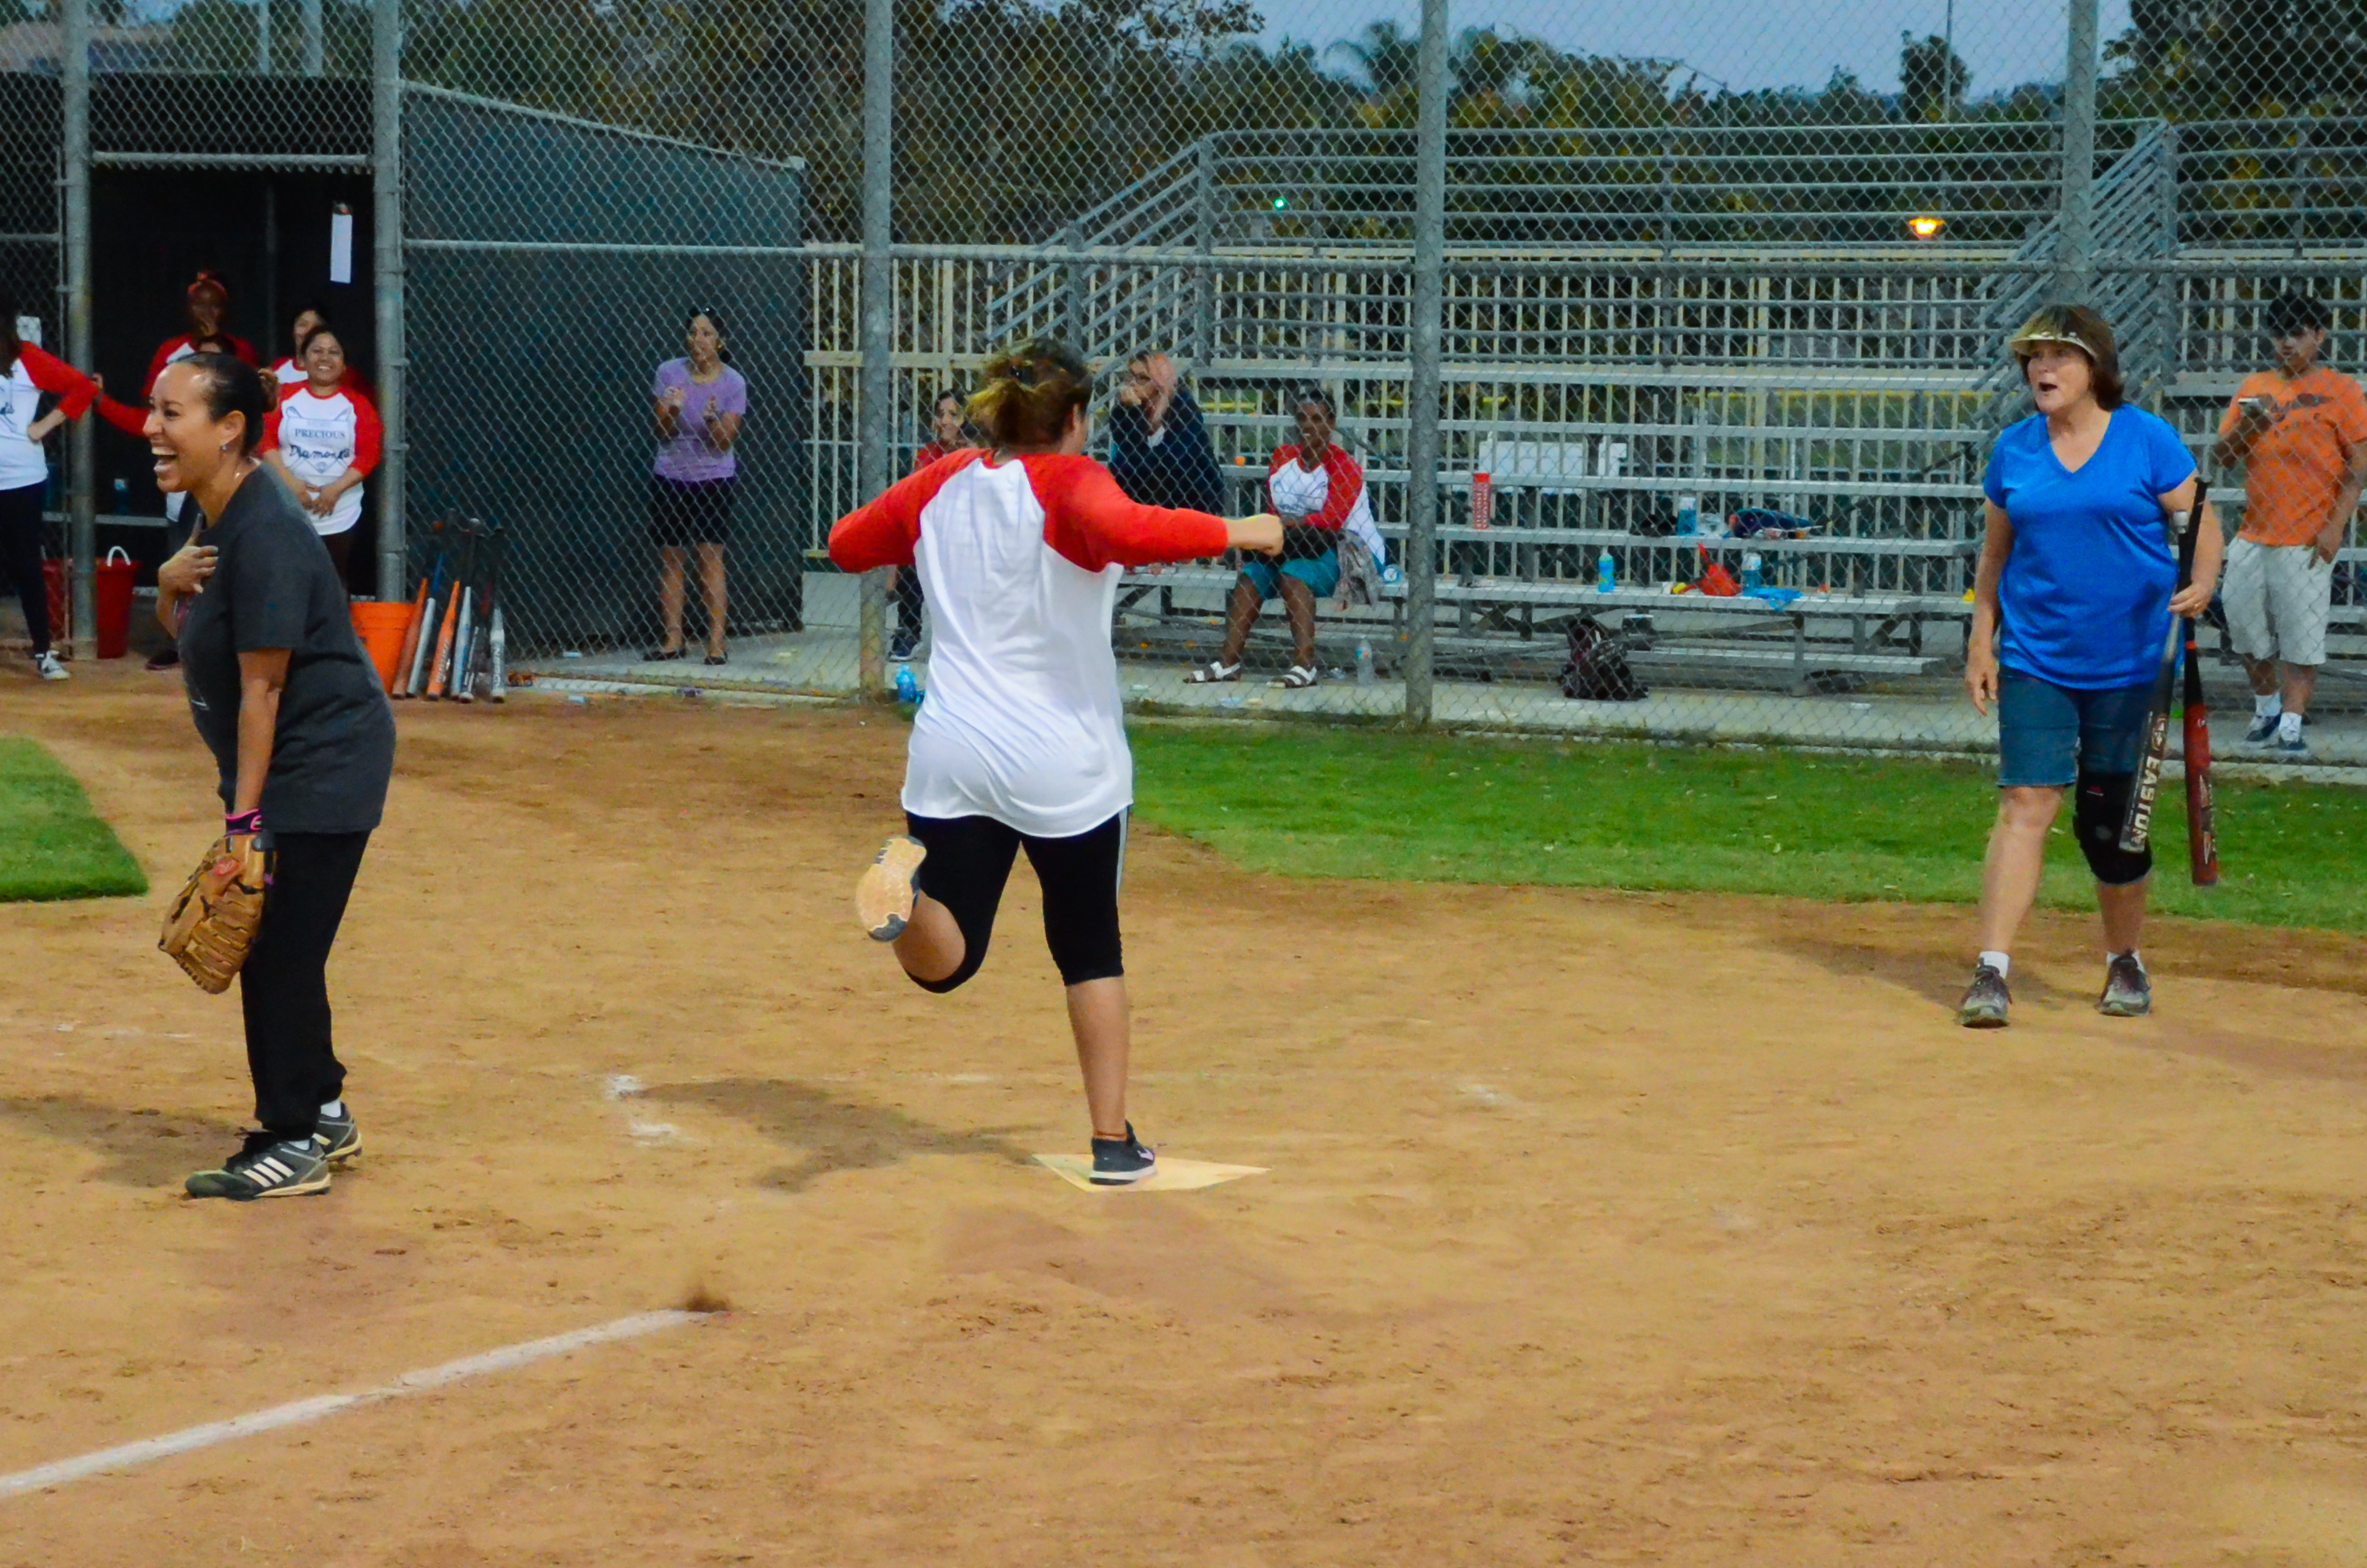 Softball_highres-113.jpg